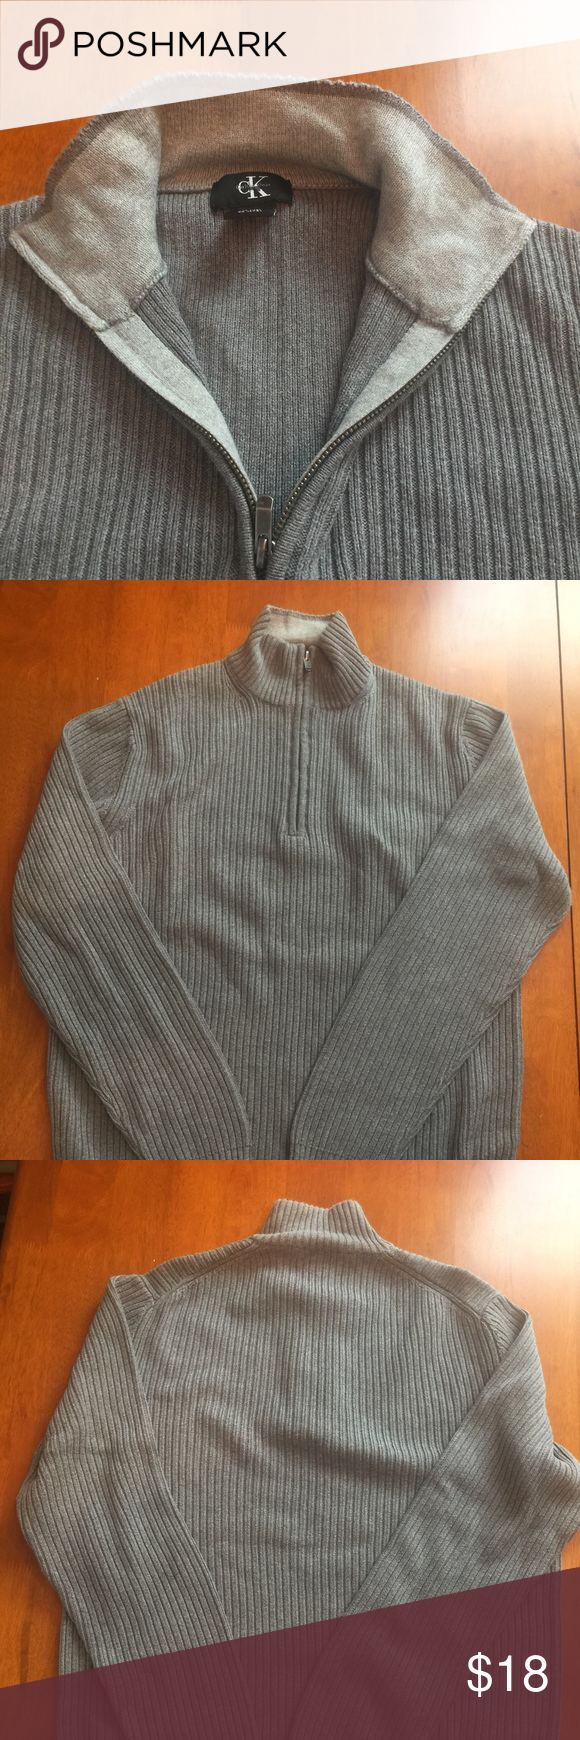 WINTER❄️SALE Calvin Klein Large Sweater Calvin Klein men's sweater.  Color is grey and size is large.  1/4 zip in front.  Item is in very good condition. Bundle to save on shipping. Calvin Klein Sweaters Zip Up